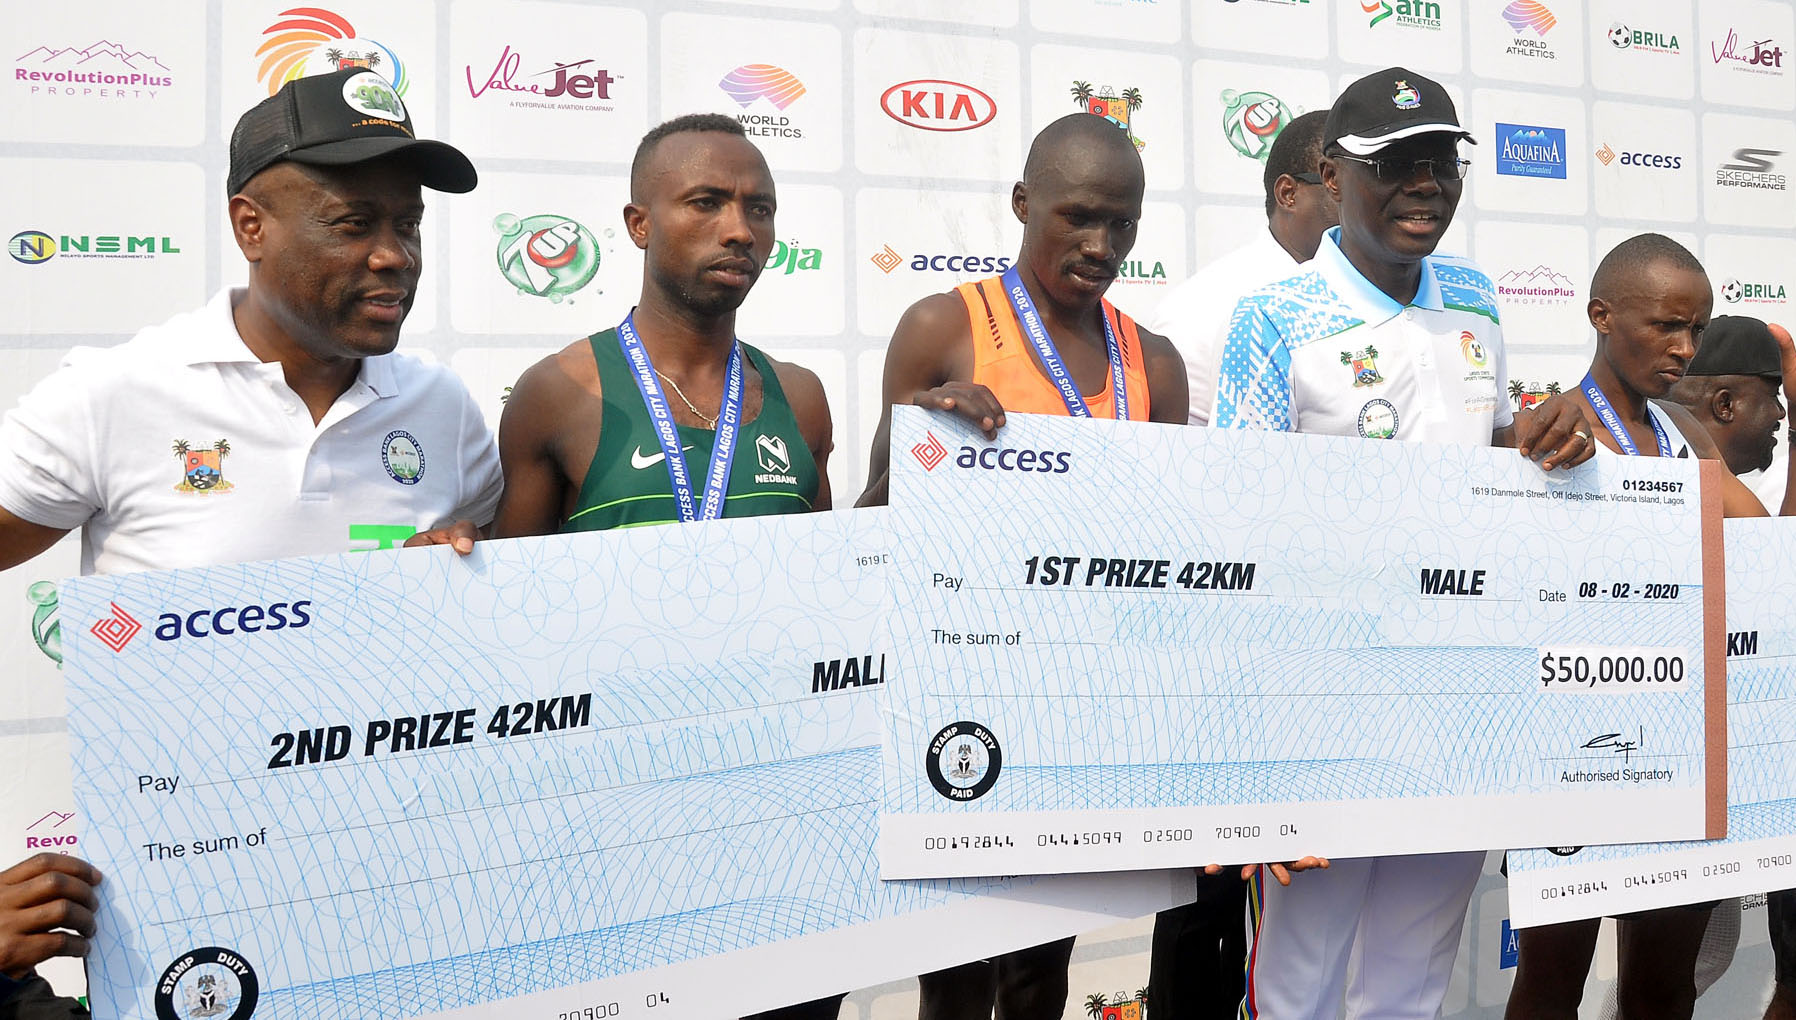 Access Bank Lagos City Marathon: Wigwe Celebrates Successful 2020 Edition